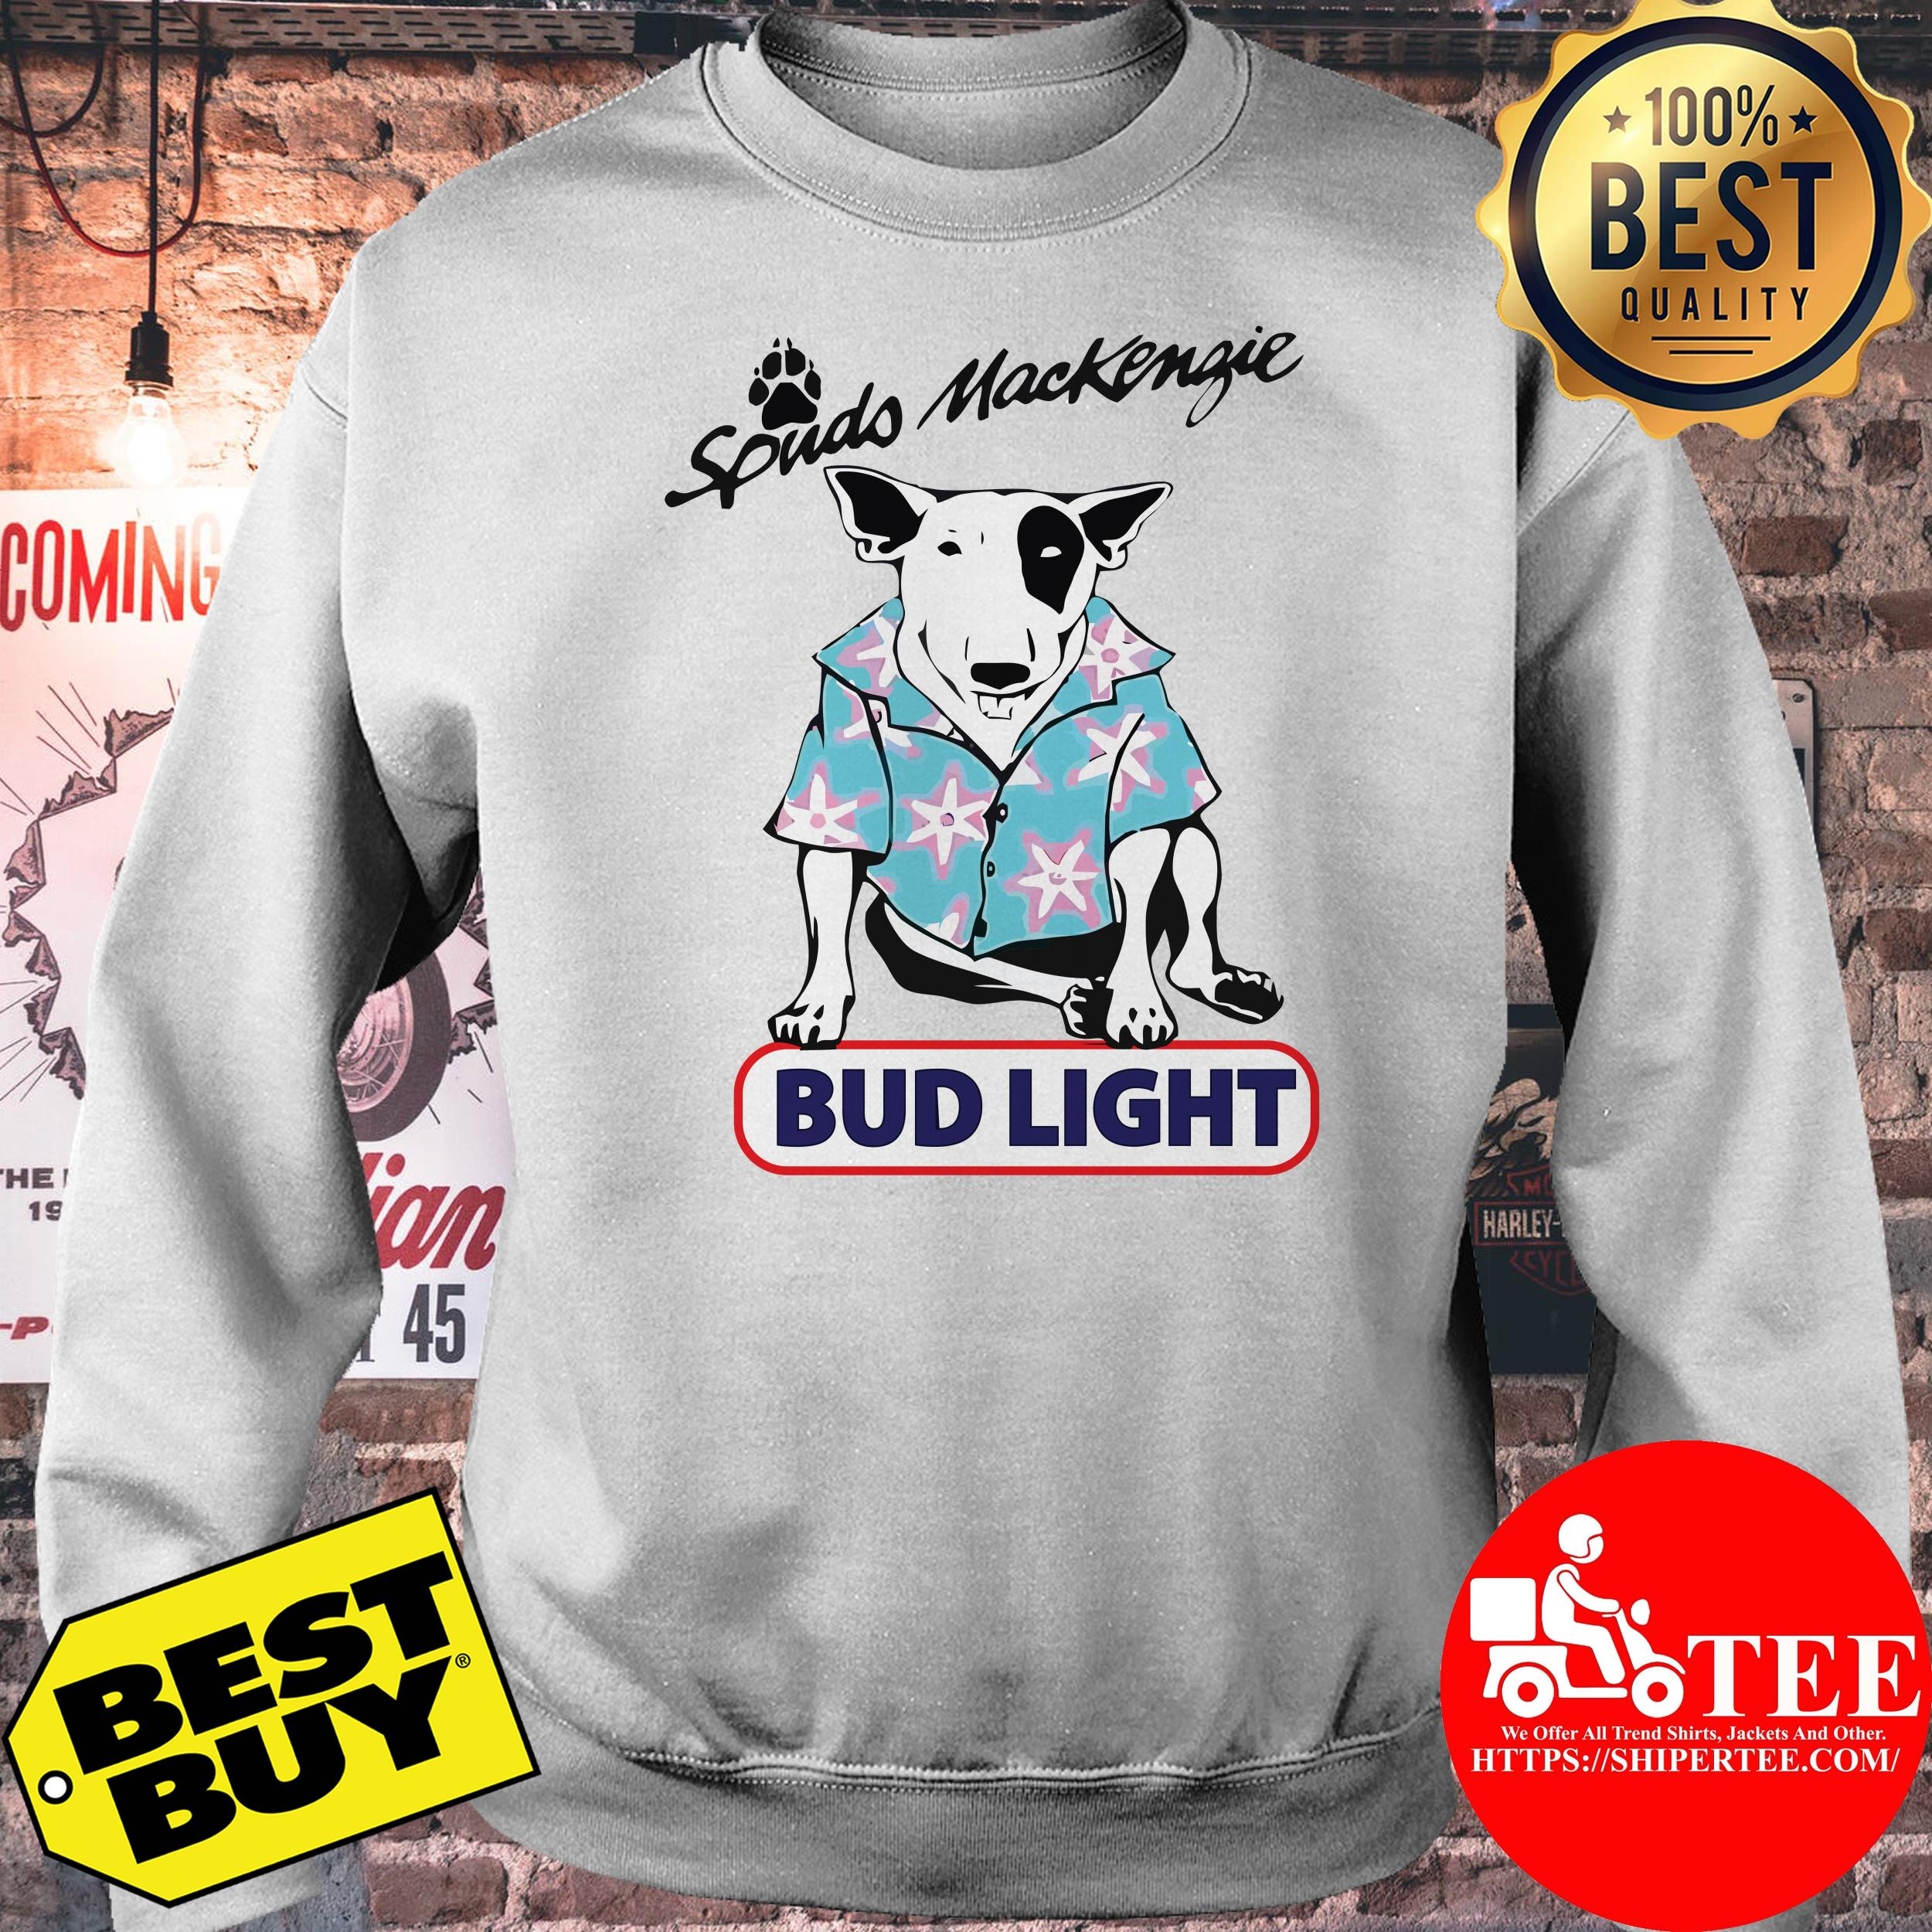 Spuds Mackenzie bud light sweatshirt